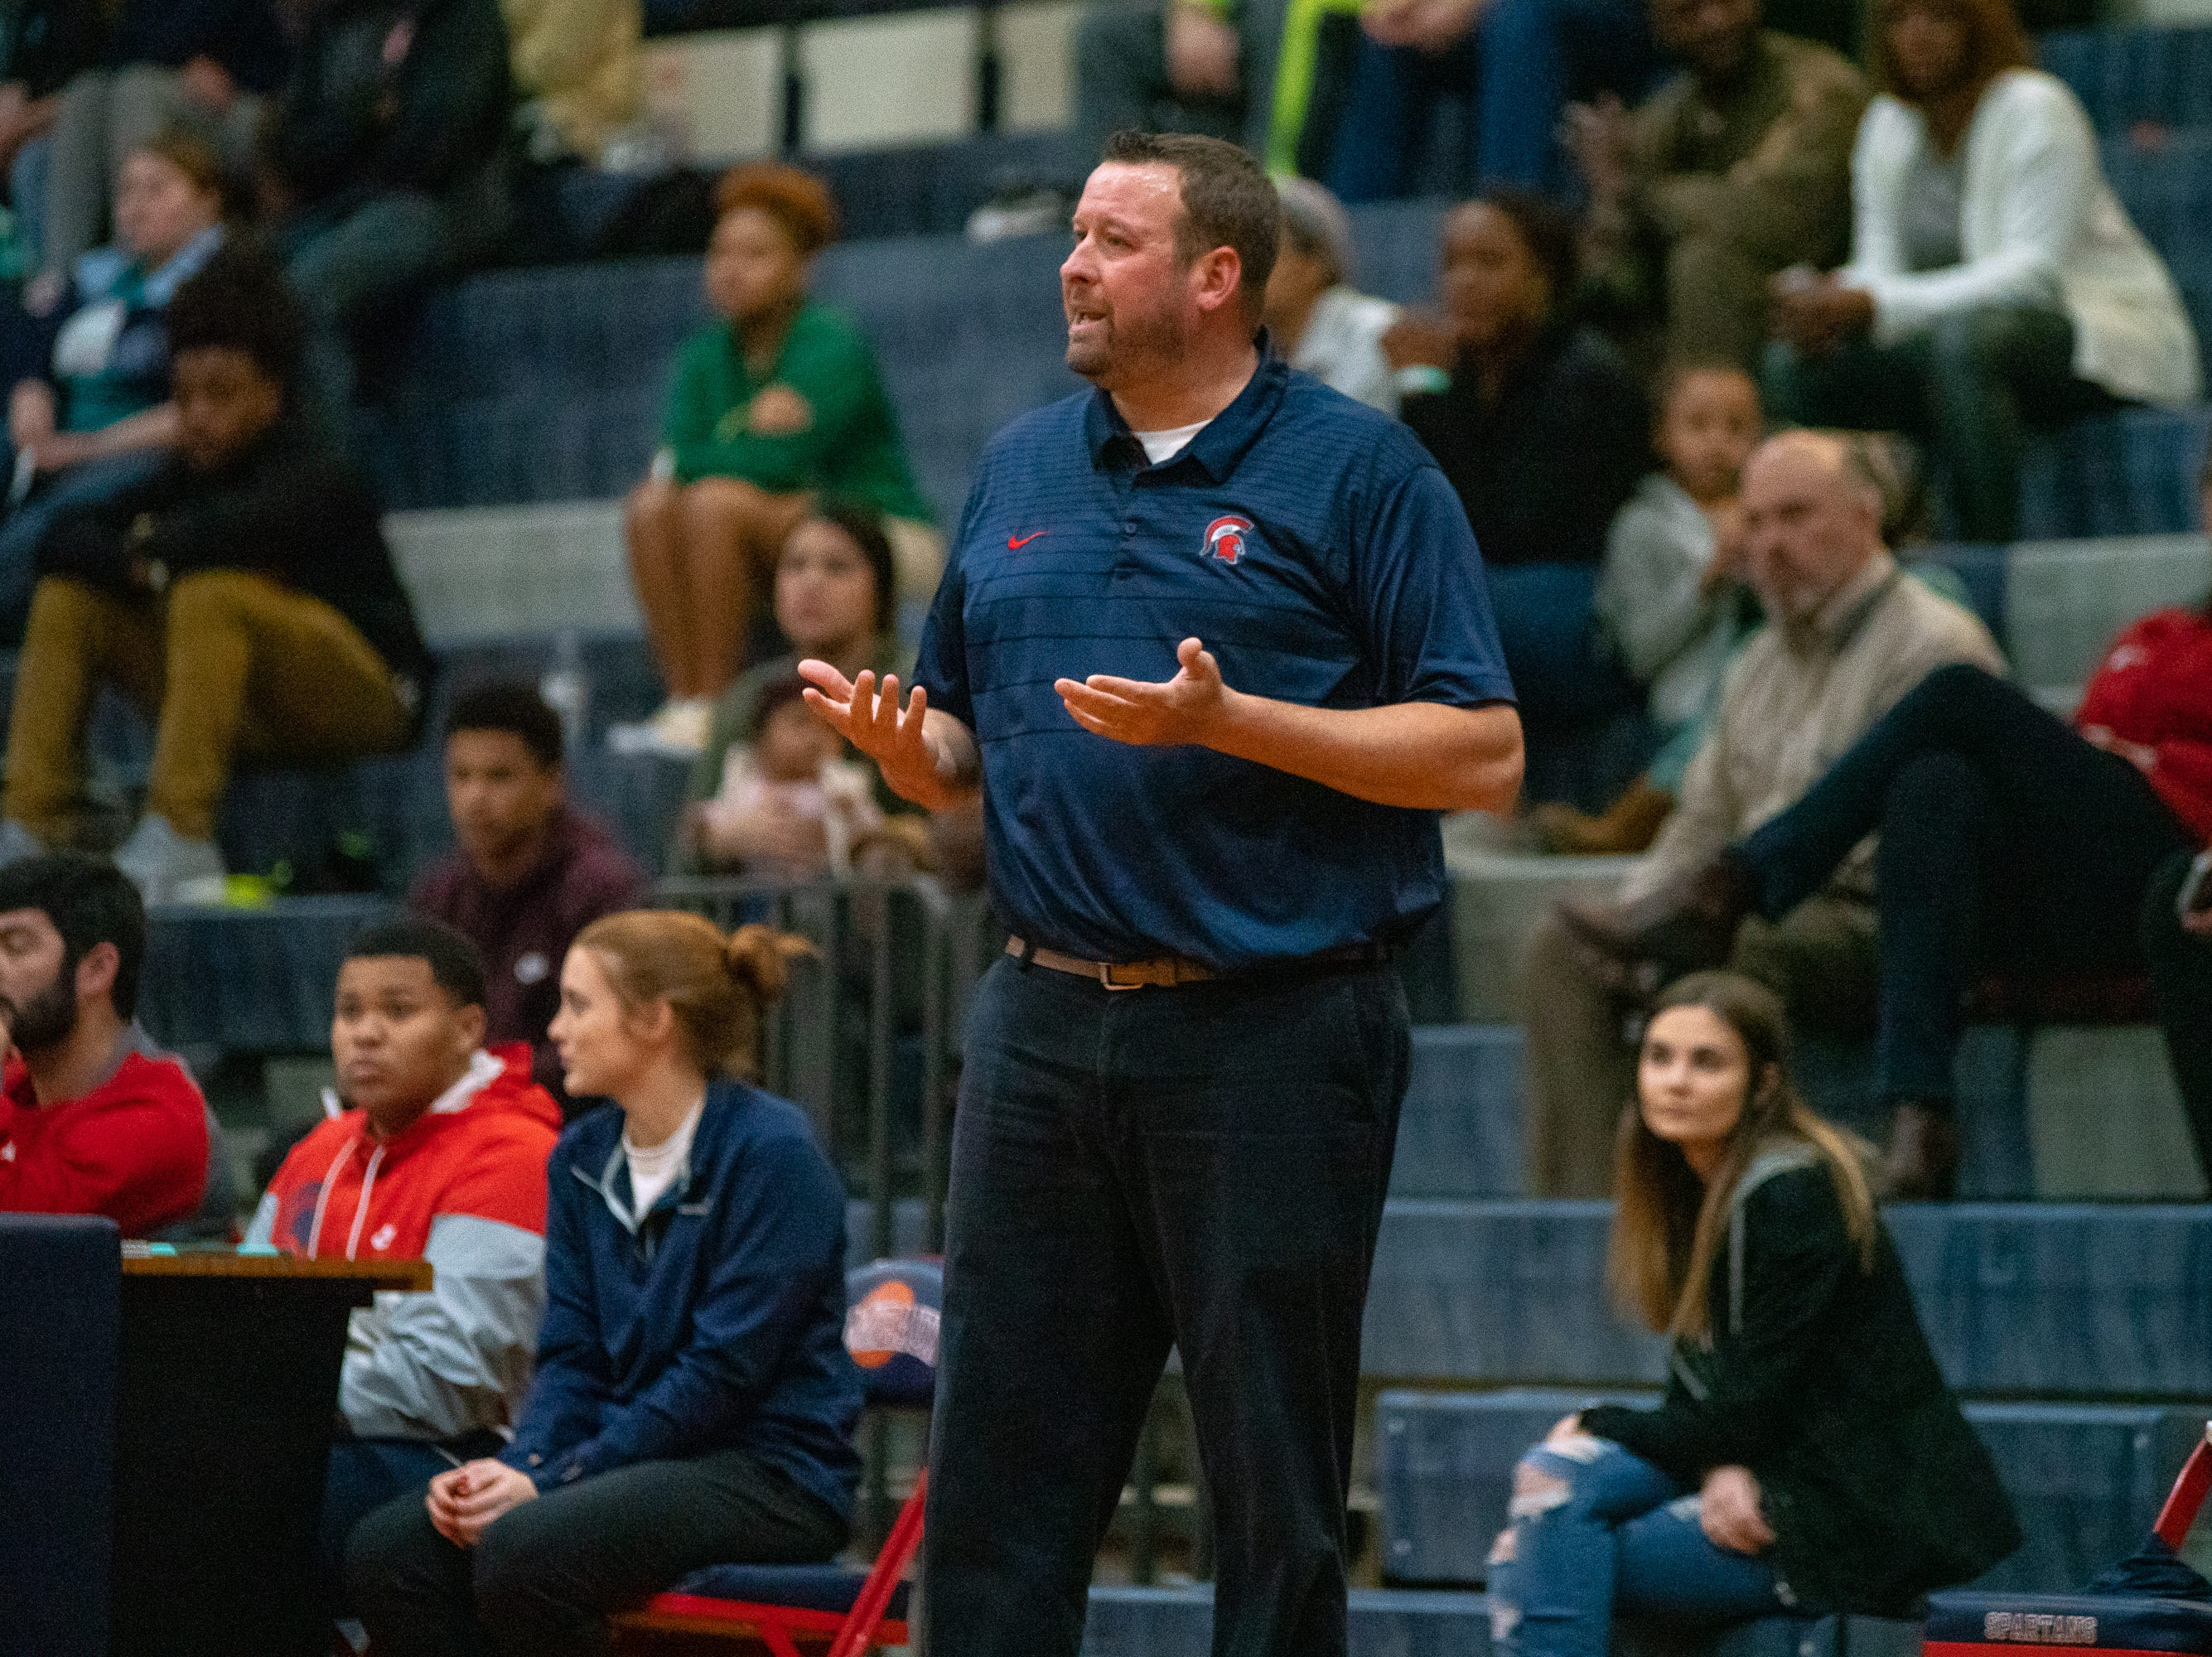 Comeaux High's head coach Jeremy Whittington questions a call from the officials as the Comeaux High Spartans take on the Acadiana High Wreckin' Rams at Comeaux high school on Jan. 25, 2019.